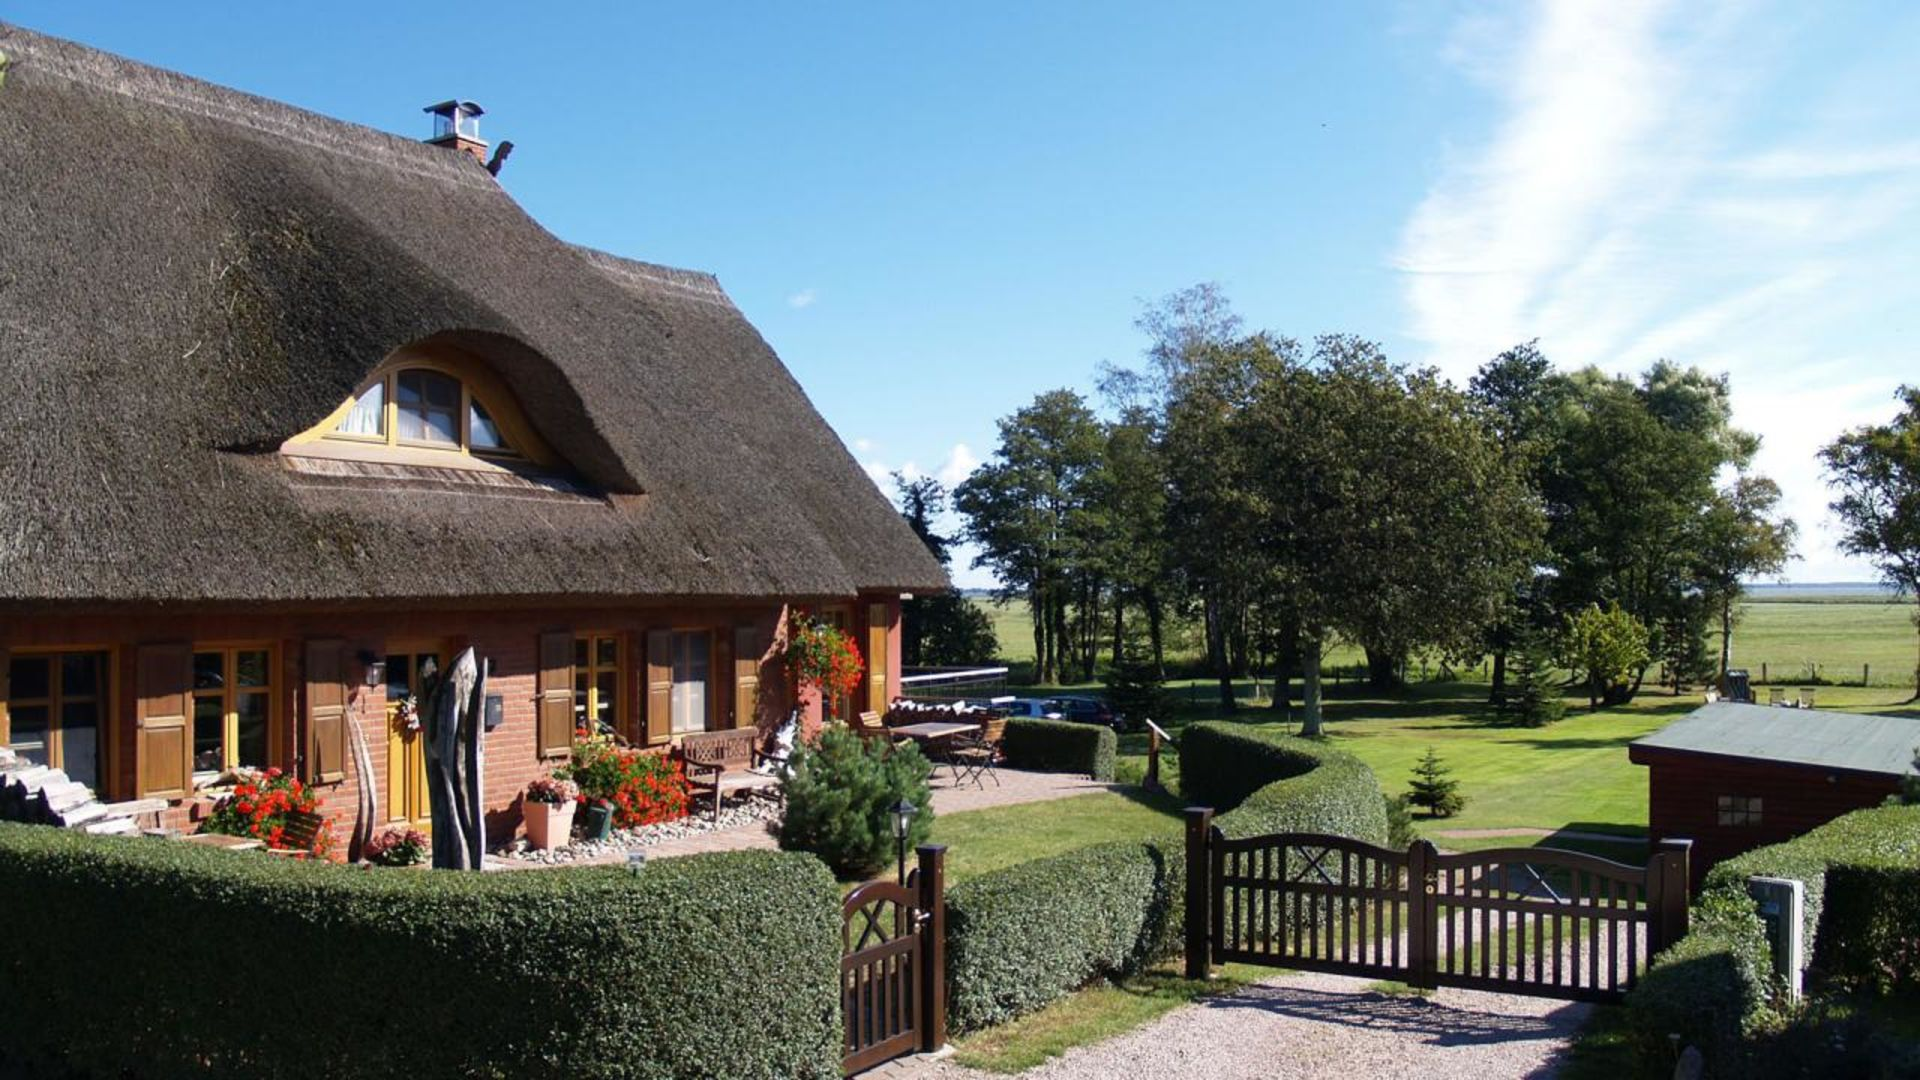 Living under a thatched roof